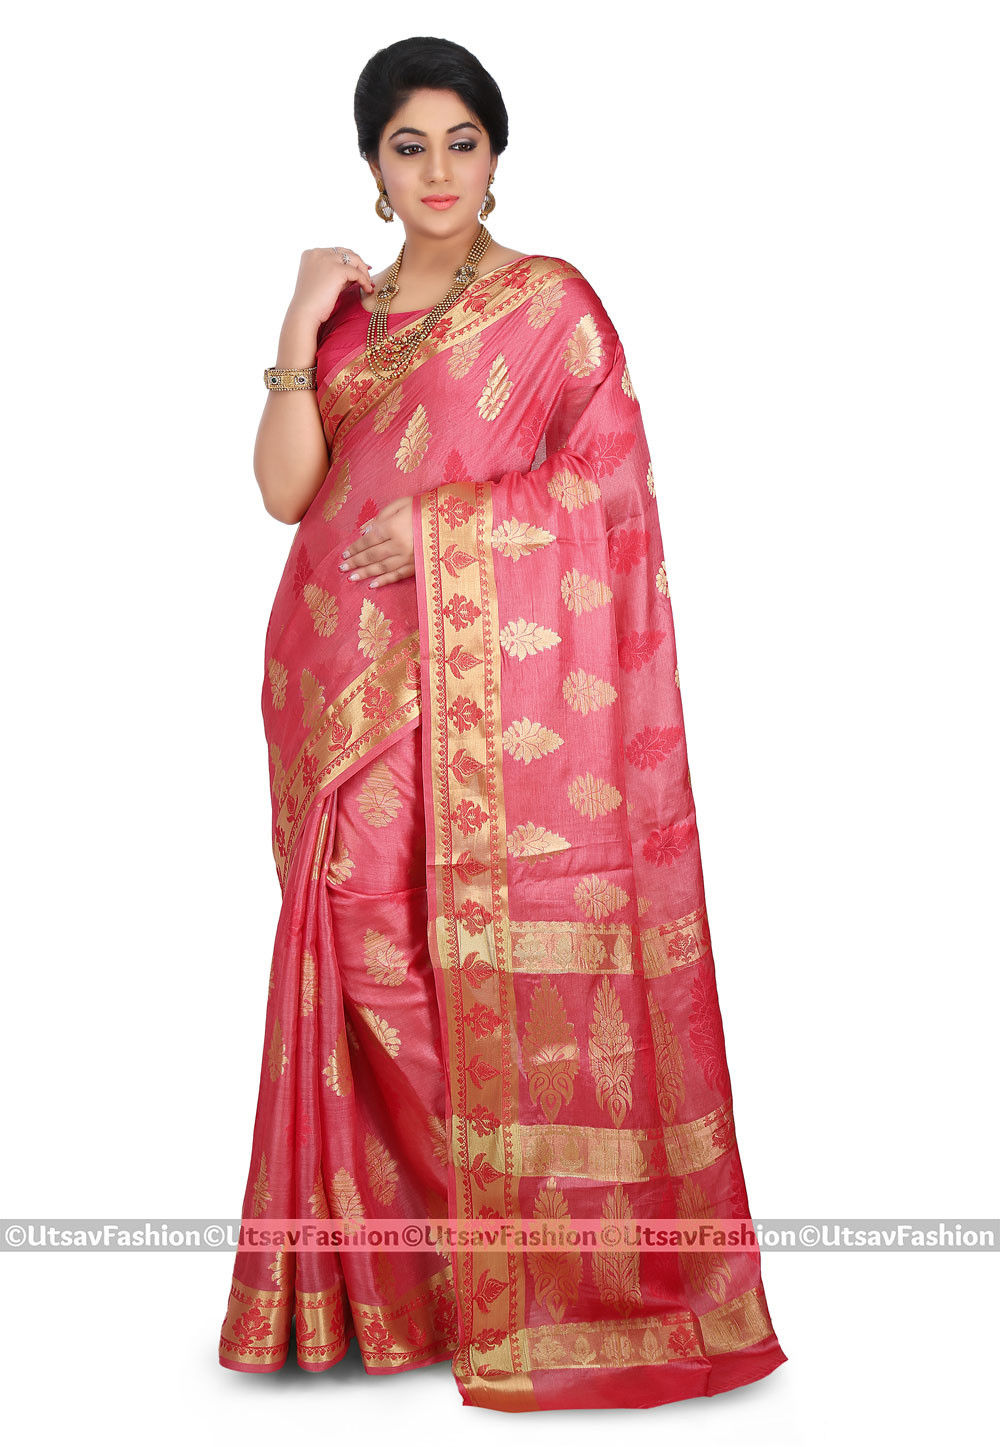 Woven Pure Tussar Silk Saree in Coral Pink